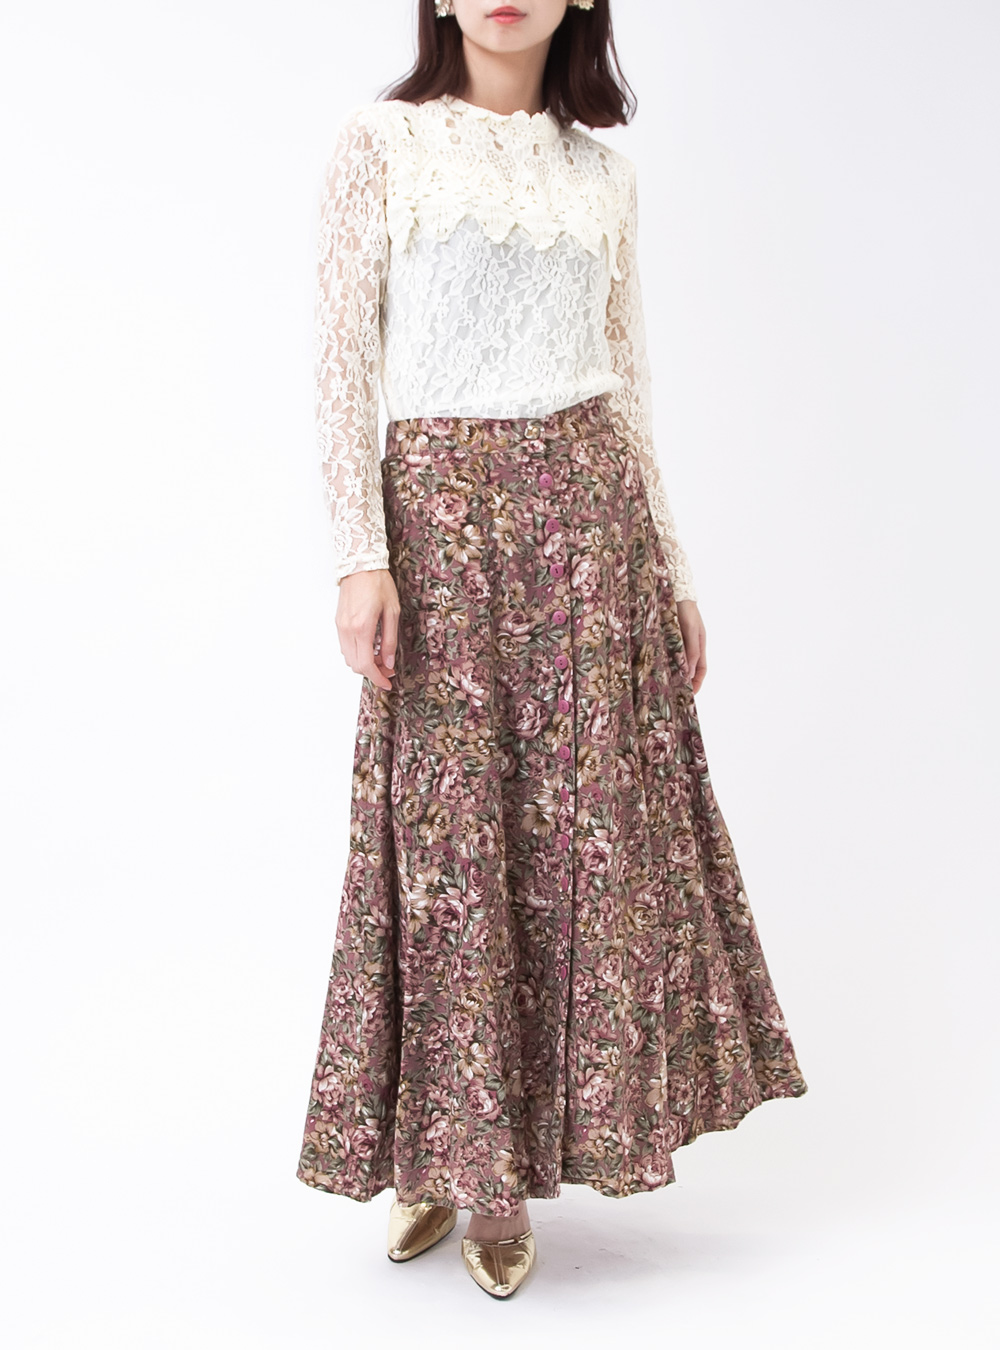 Dusty Pink Flower Print Skirt